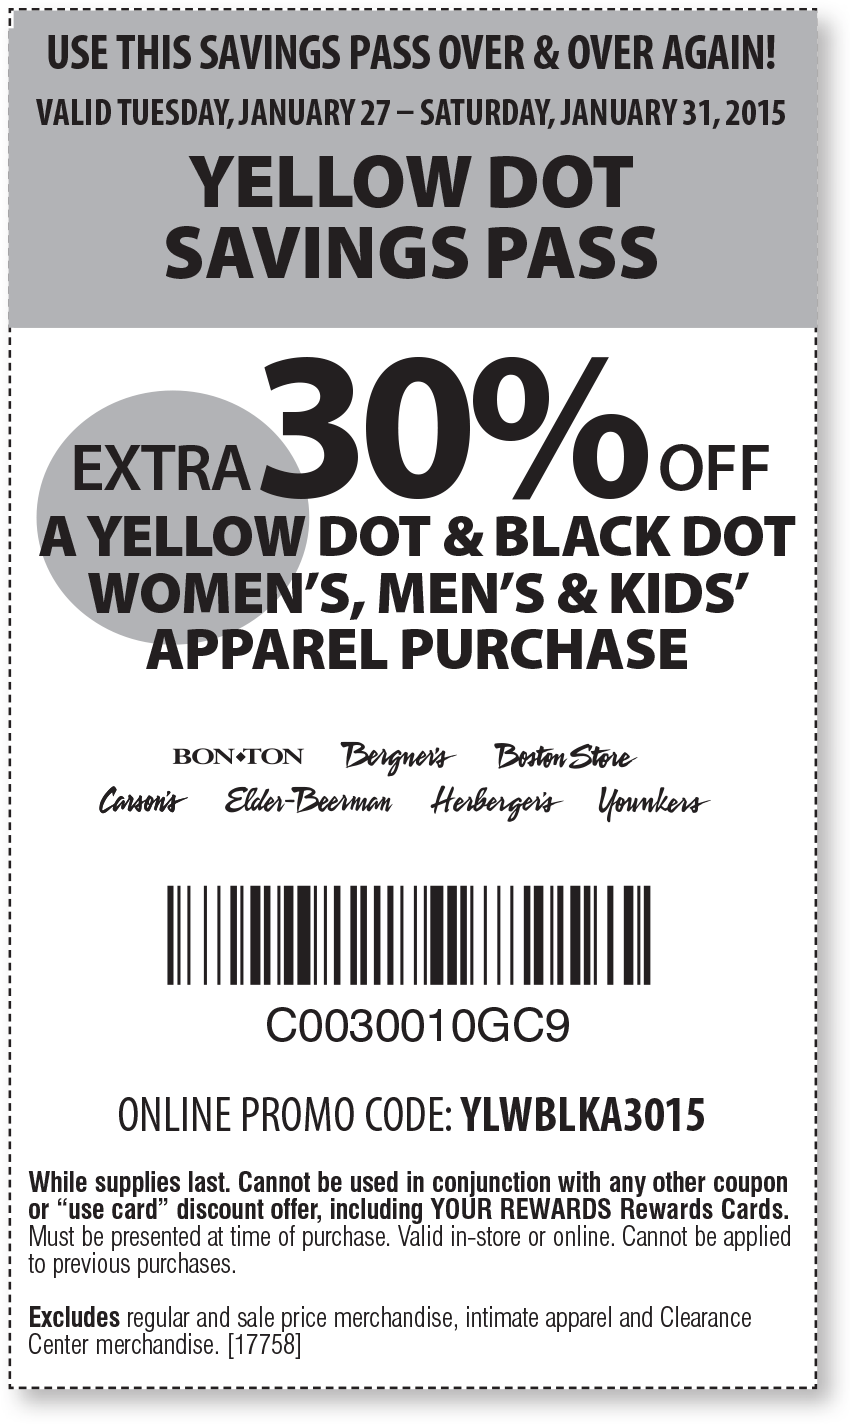 Bon Ton Coupon April 2017 Extra 30% off clearance at Bon Ton, Carsons & sister stores, or online via promo YLWBLKA3015